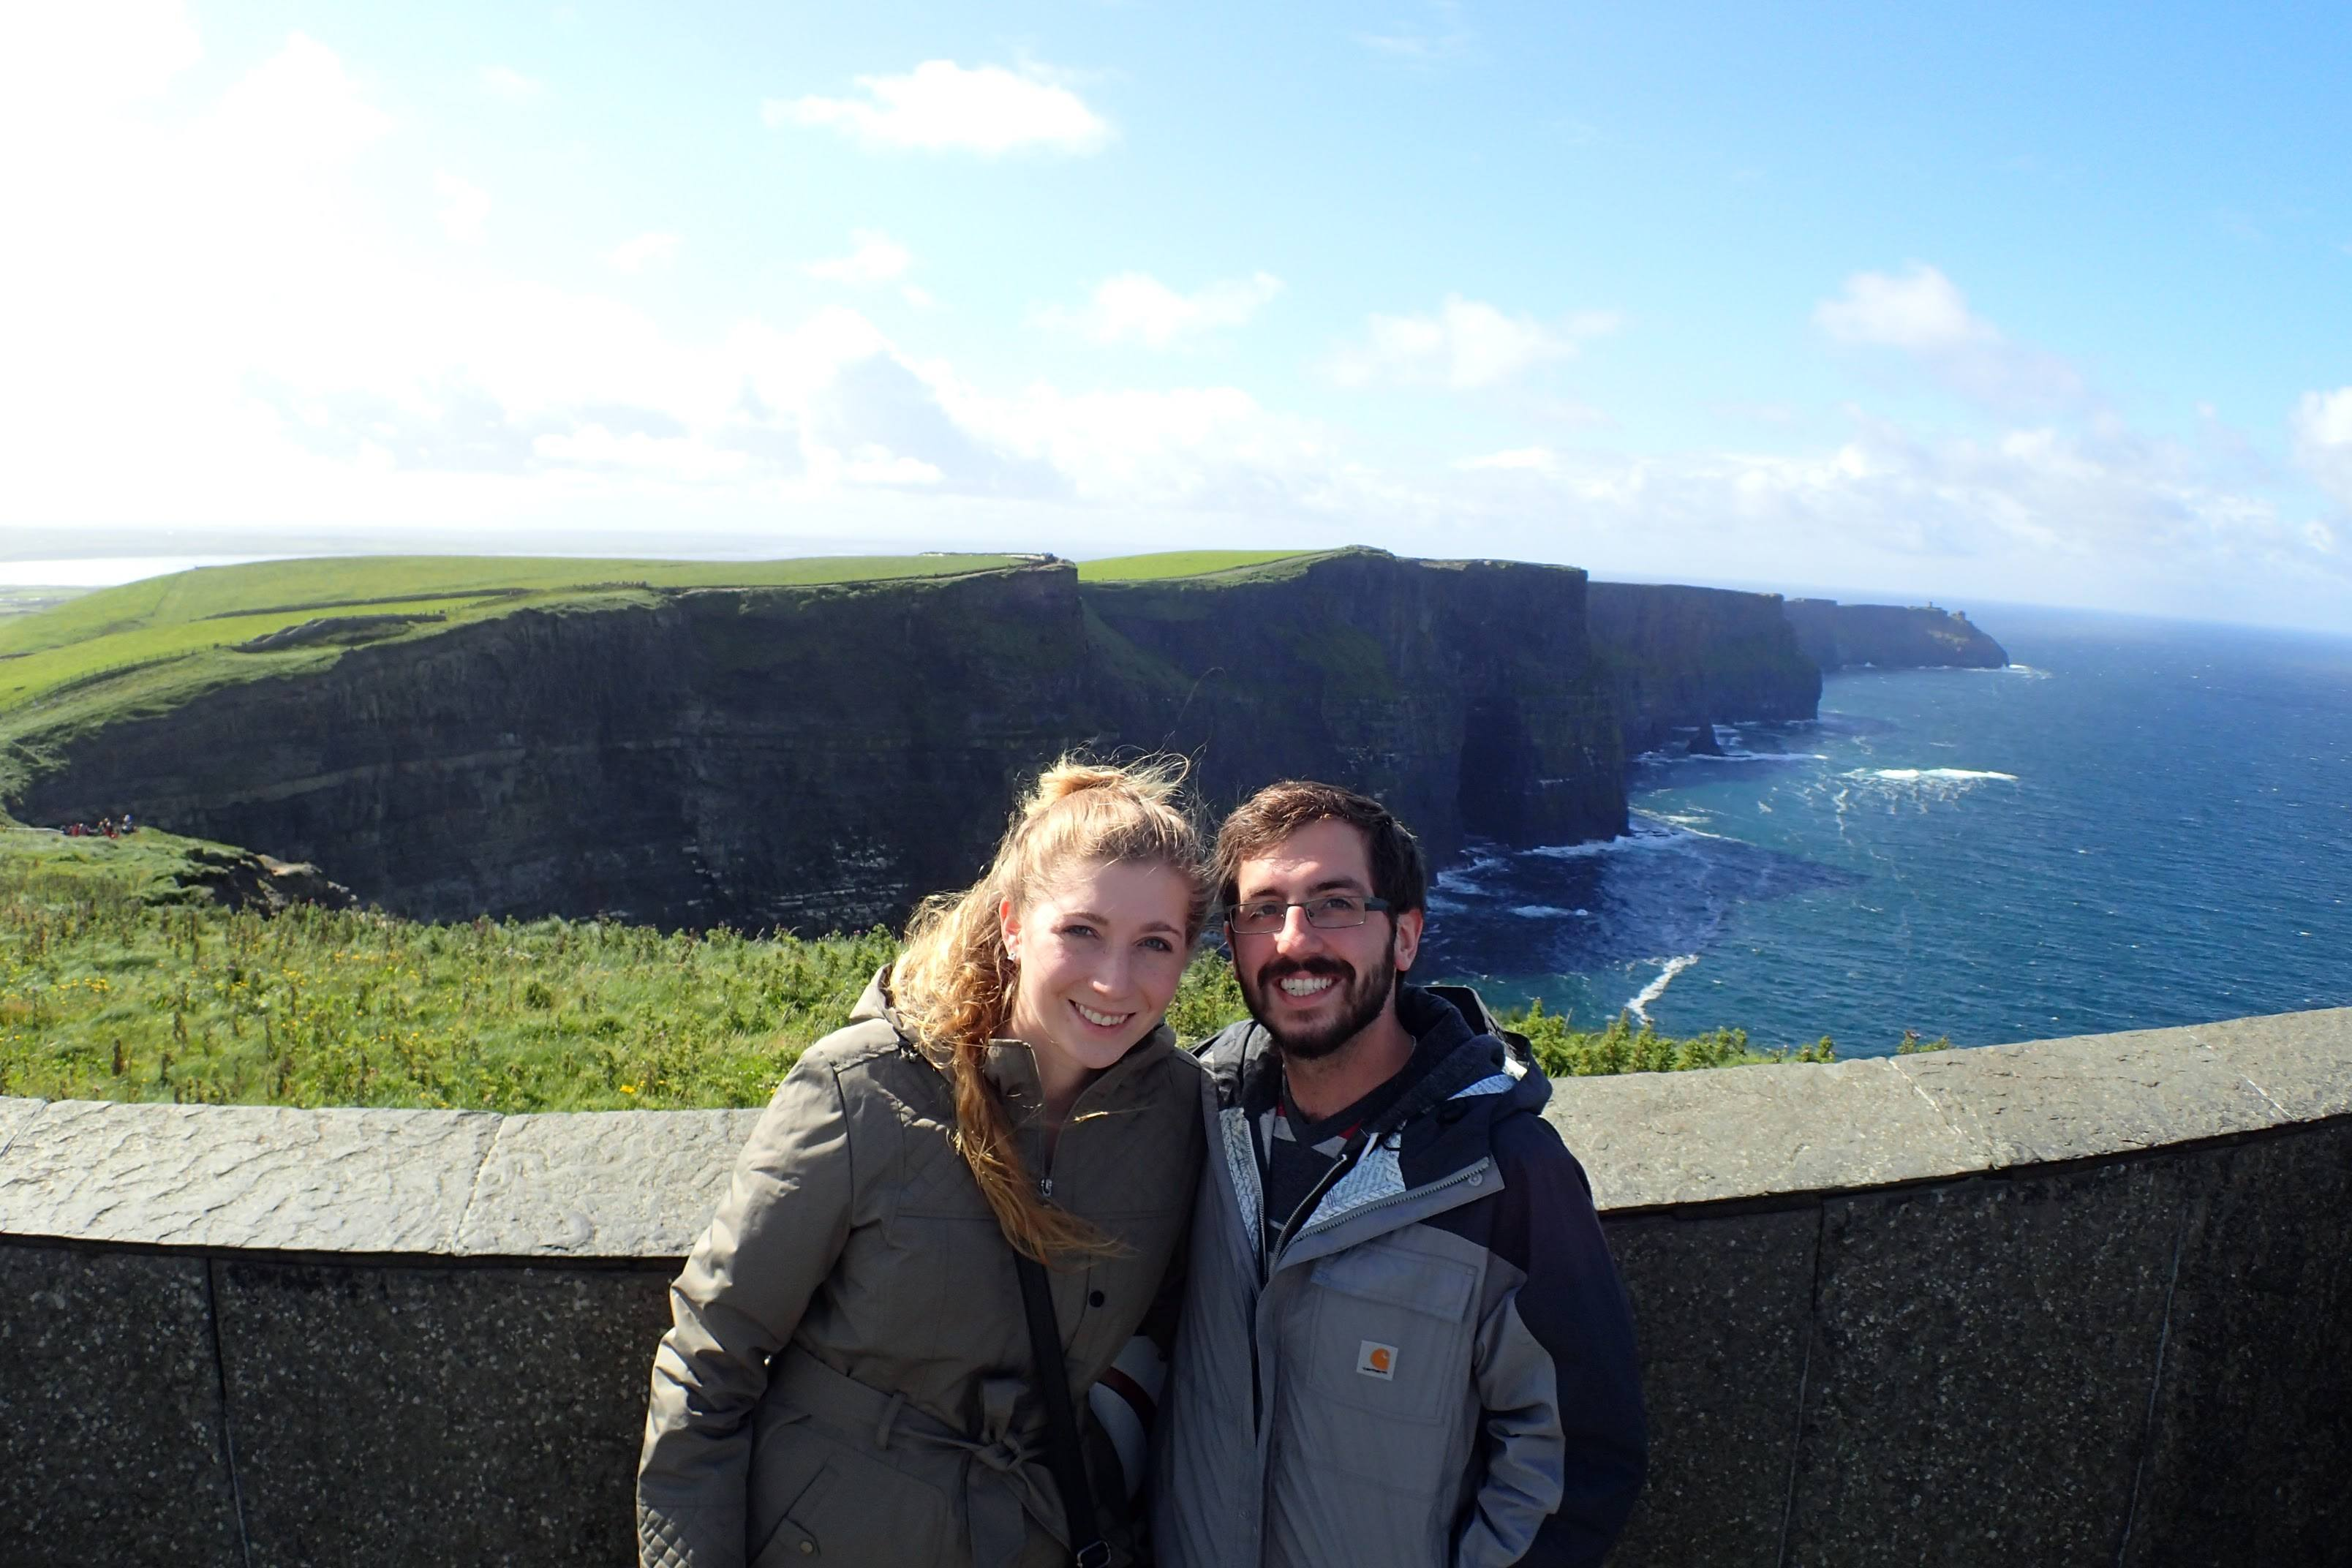 Exploring the Cliffs of Moher in Ireland